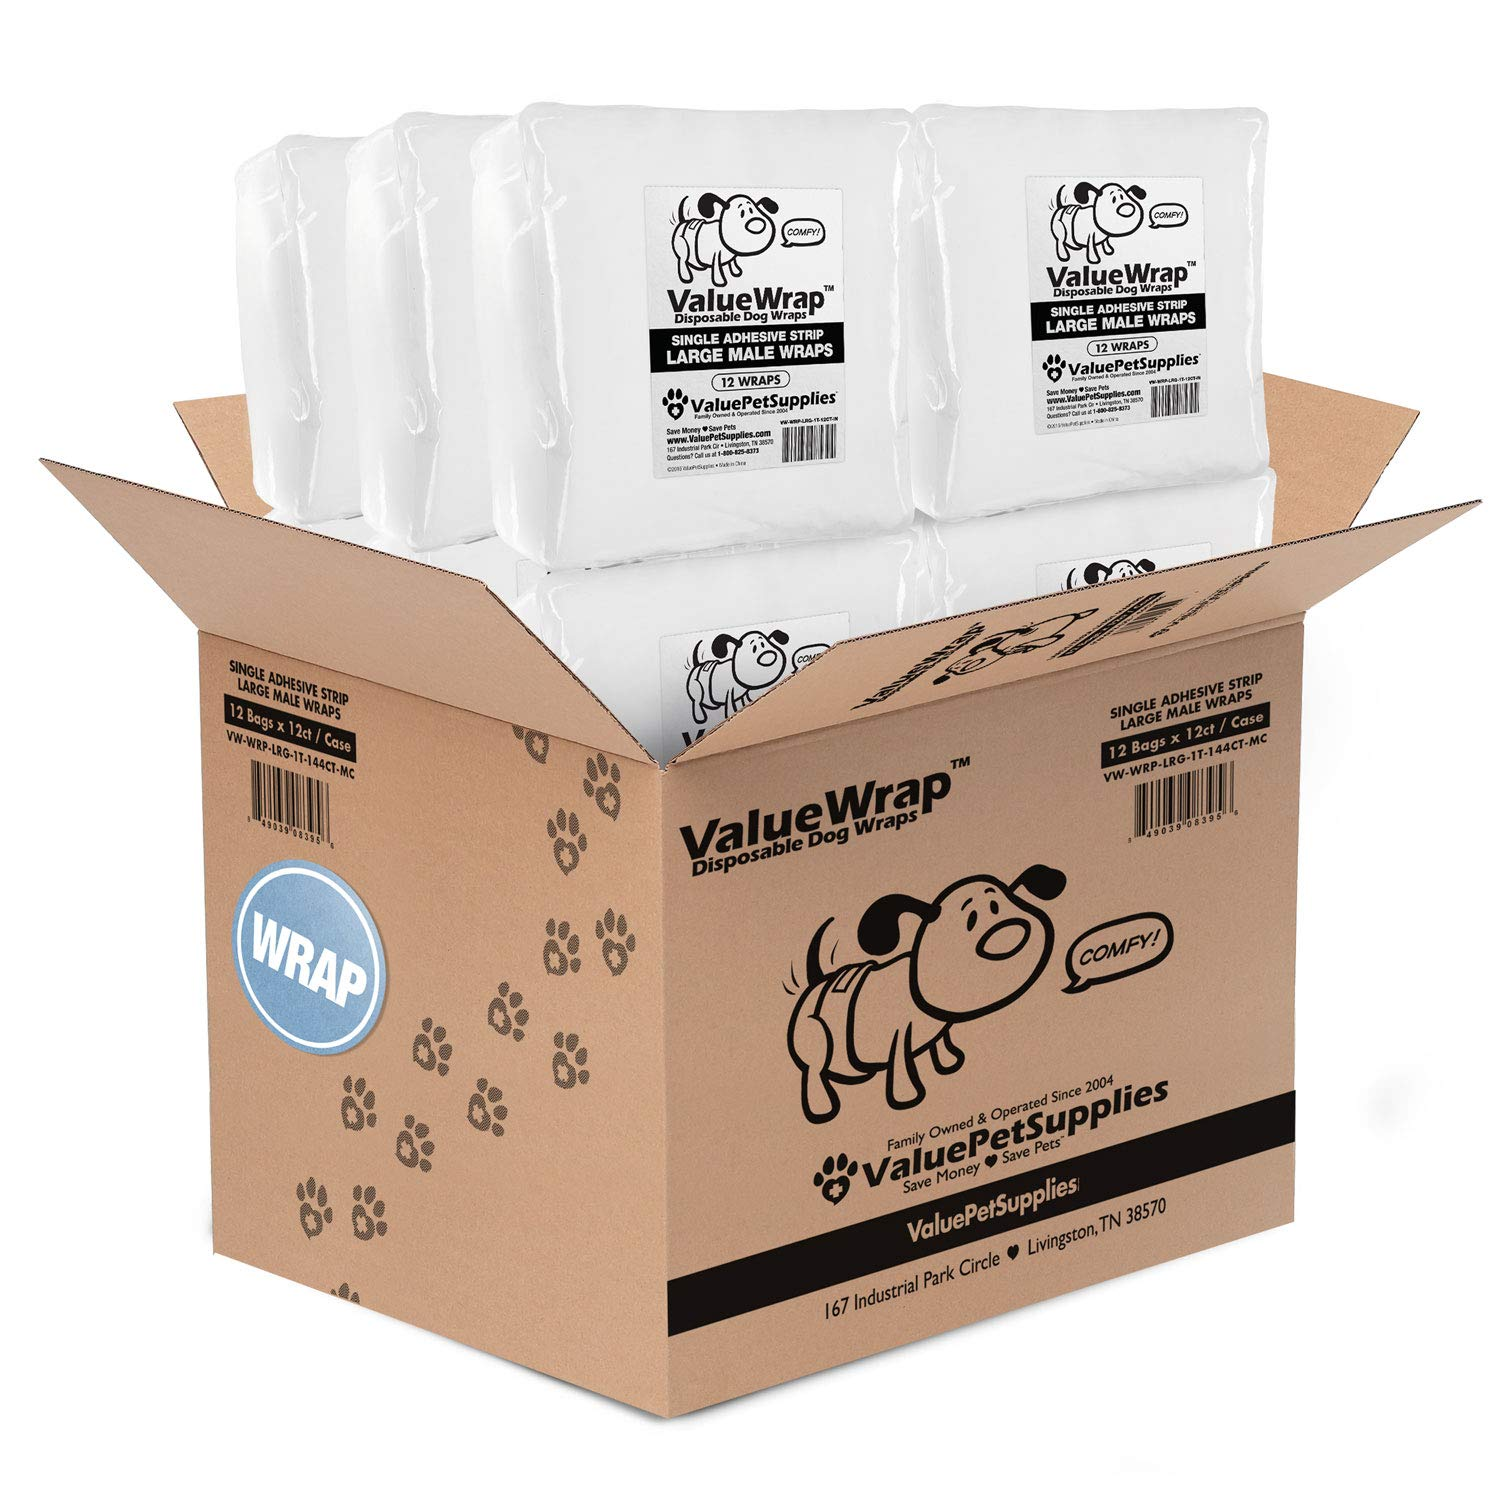 ValueWrap Male Dog Diapers, Belly Wraps, 1-Tab, Large, 144 Count